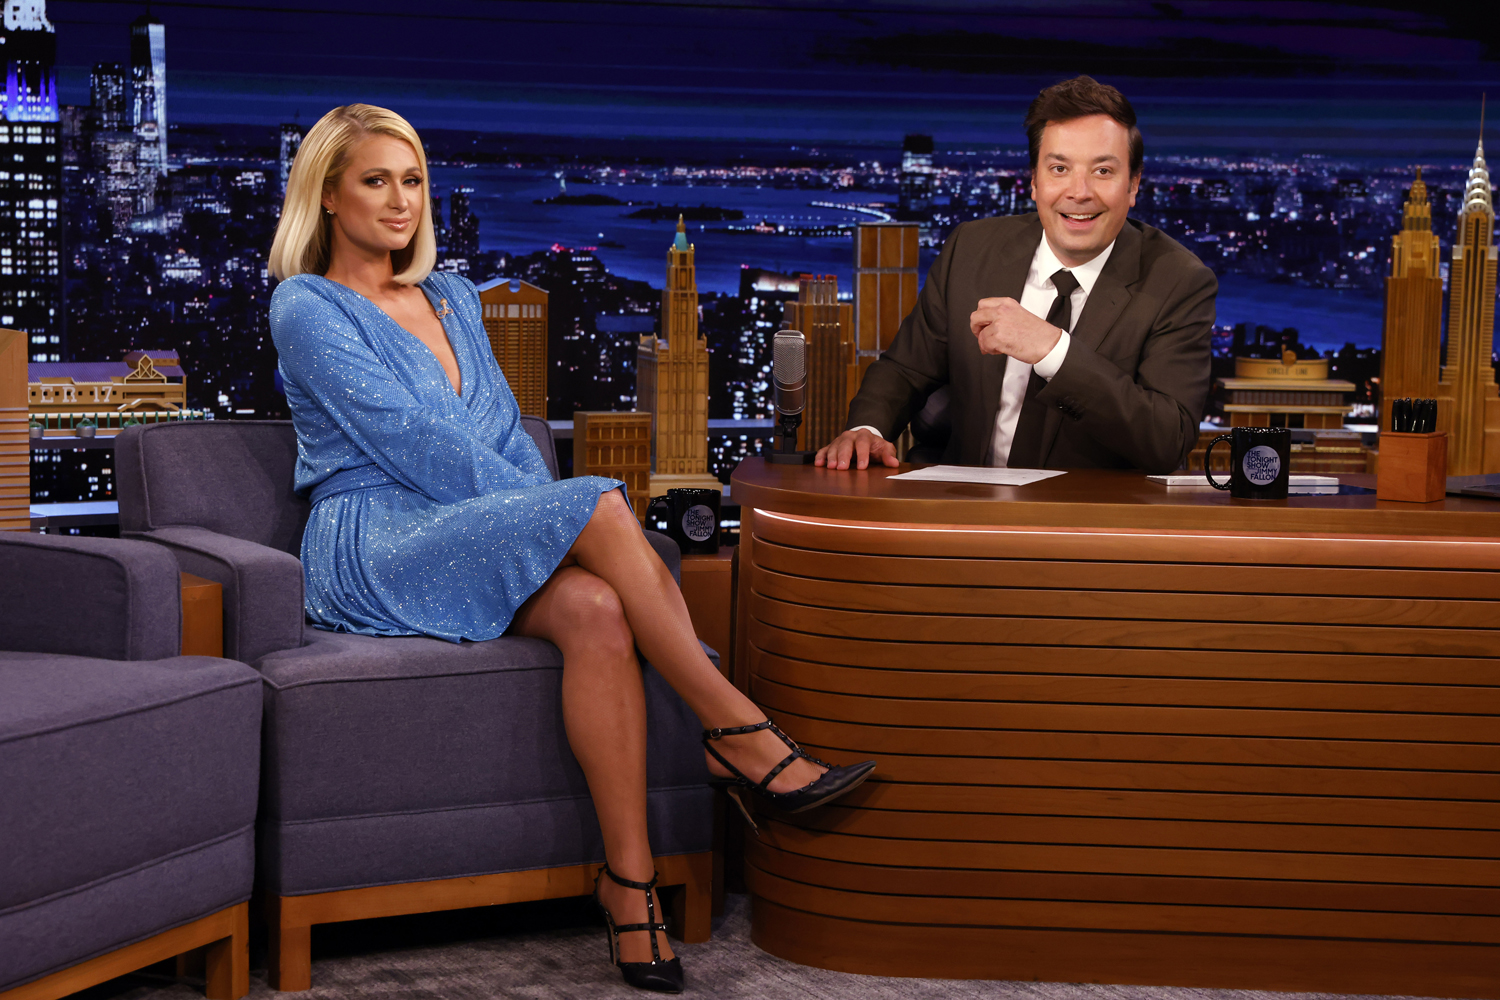 Paris Hilton during an interview with host Jimmy Fallon